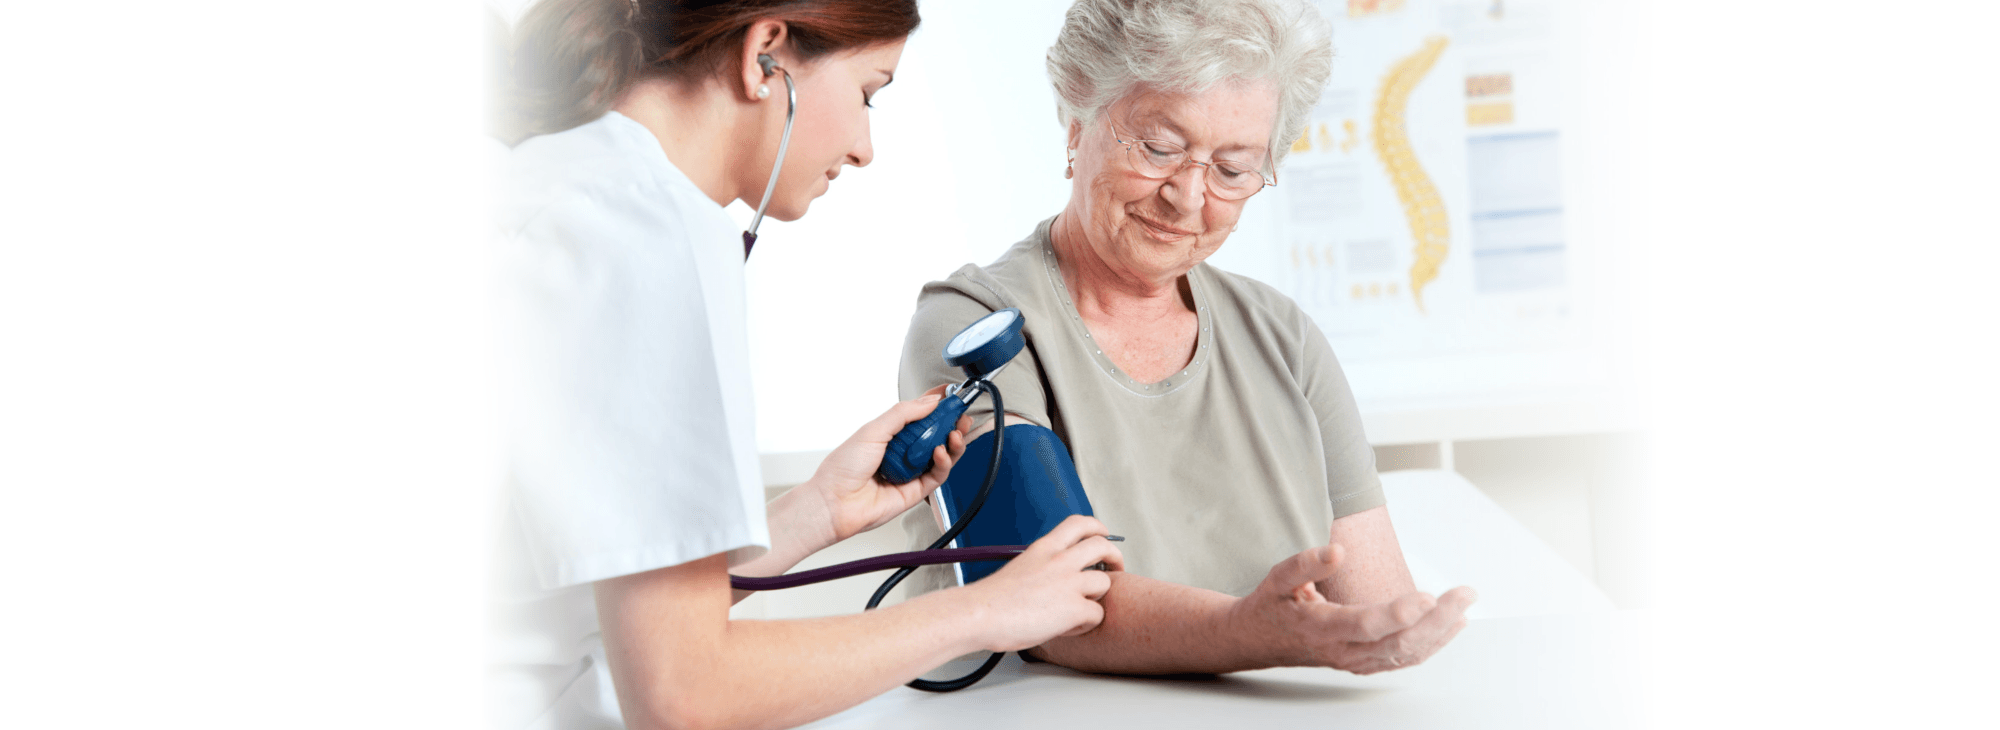 a nurse getting blood pressure